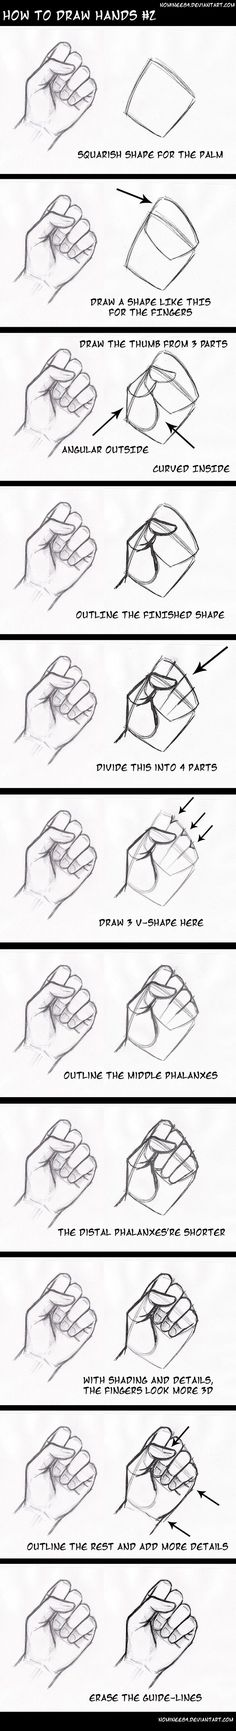 really helpgul breakdown of the hand. i personally am terrible at draweing ahnds…